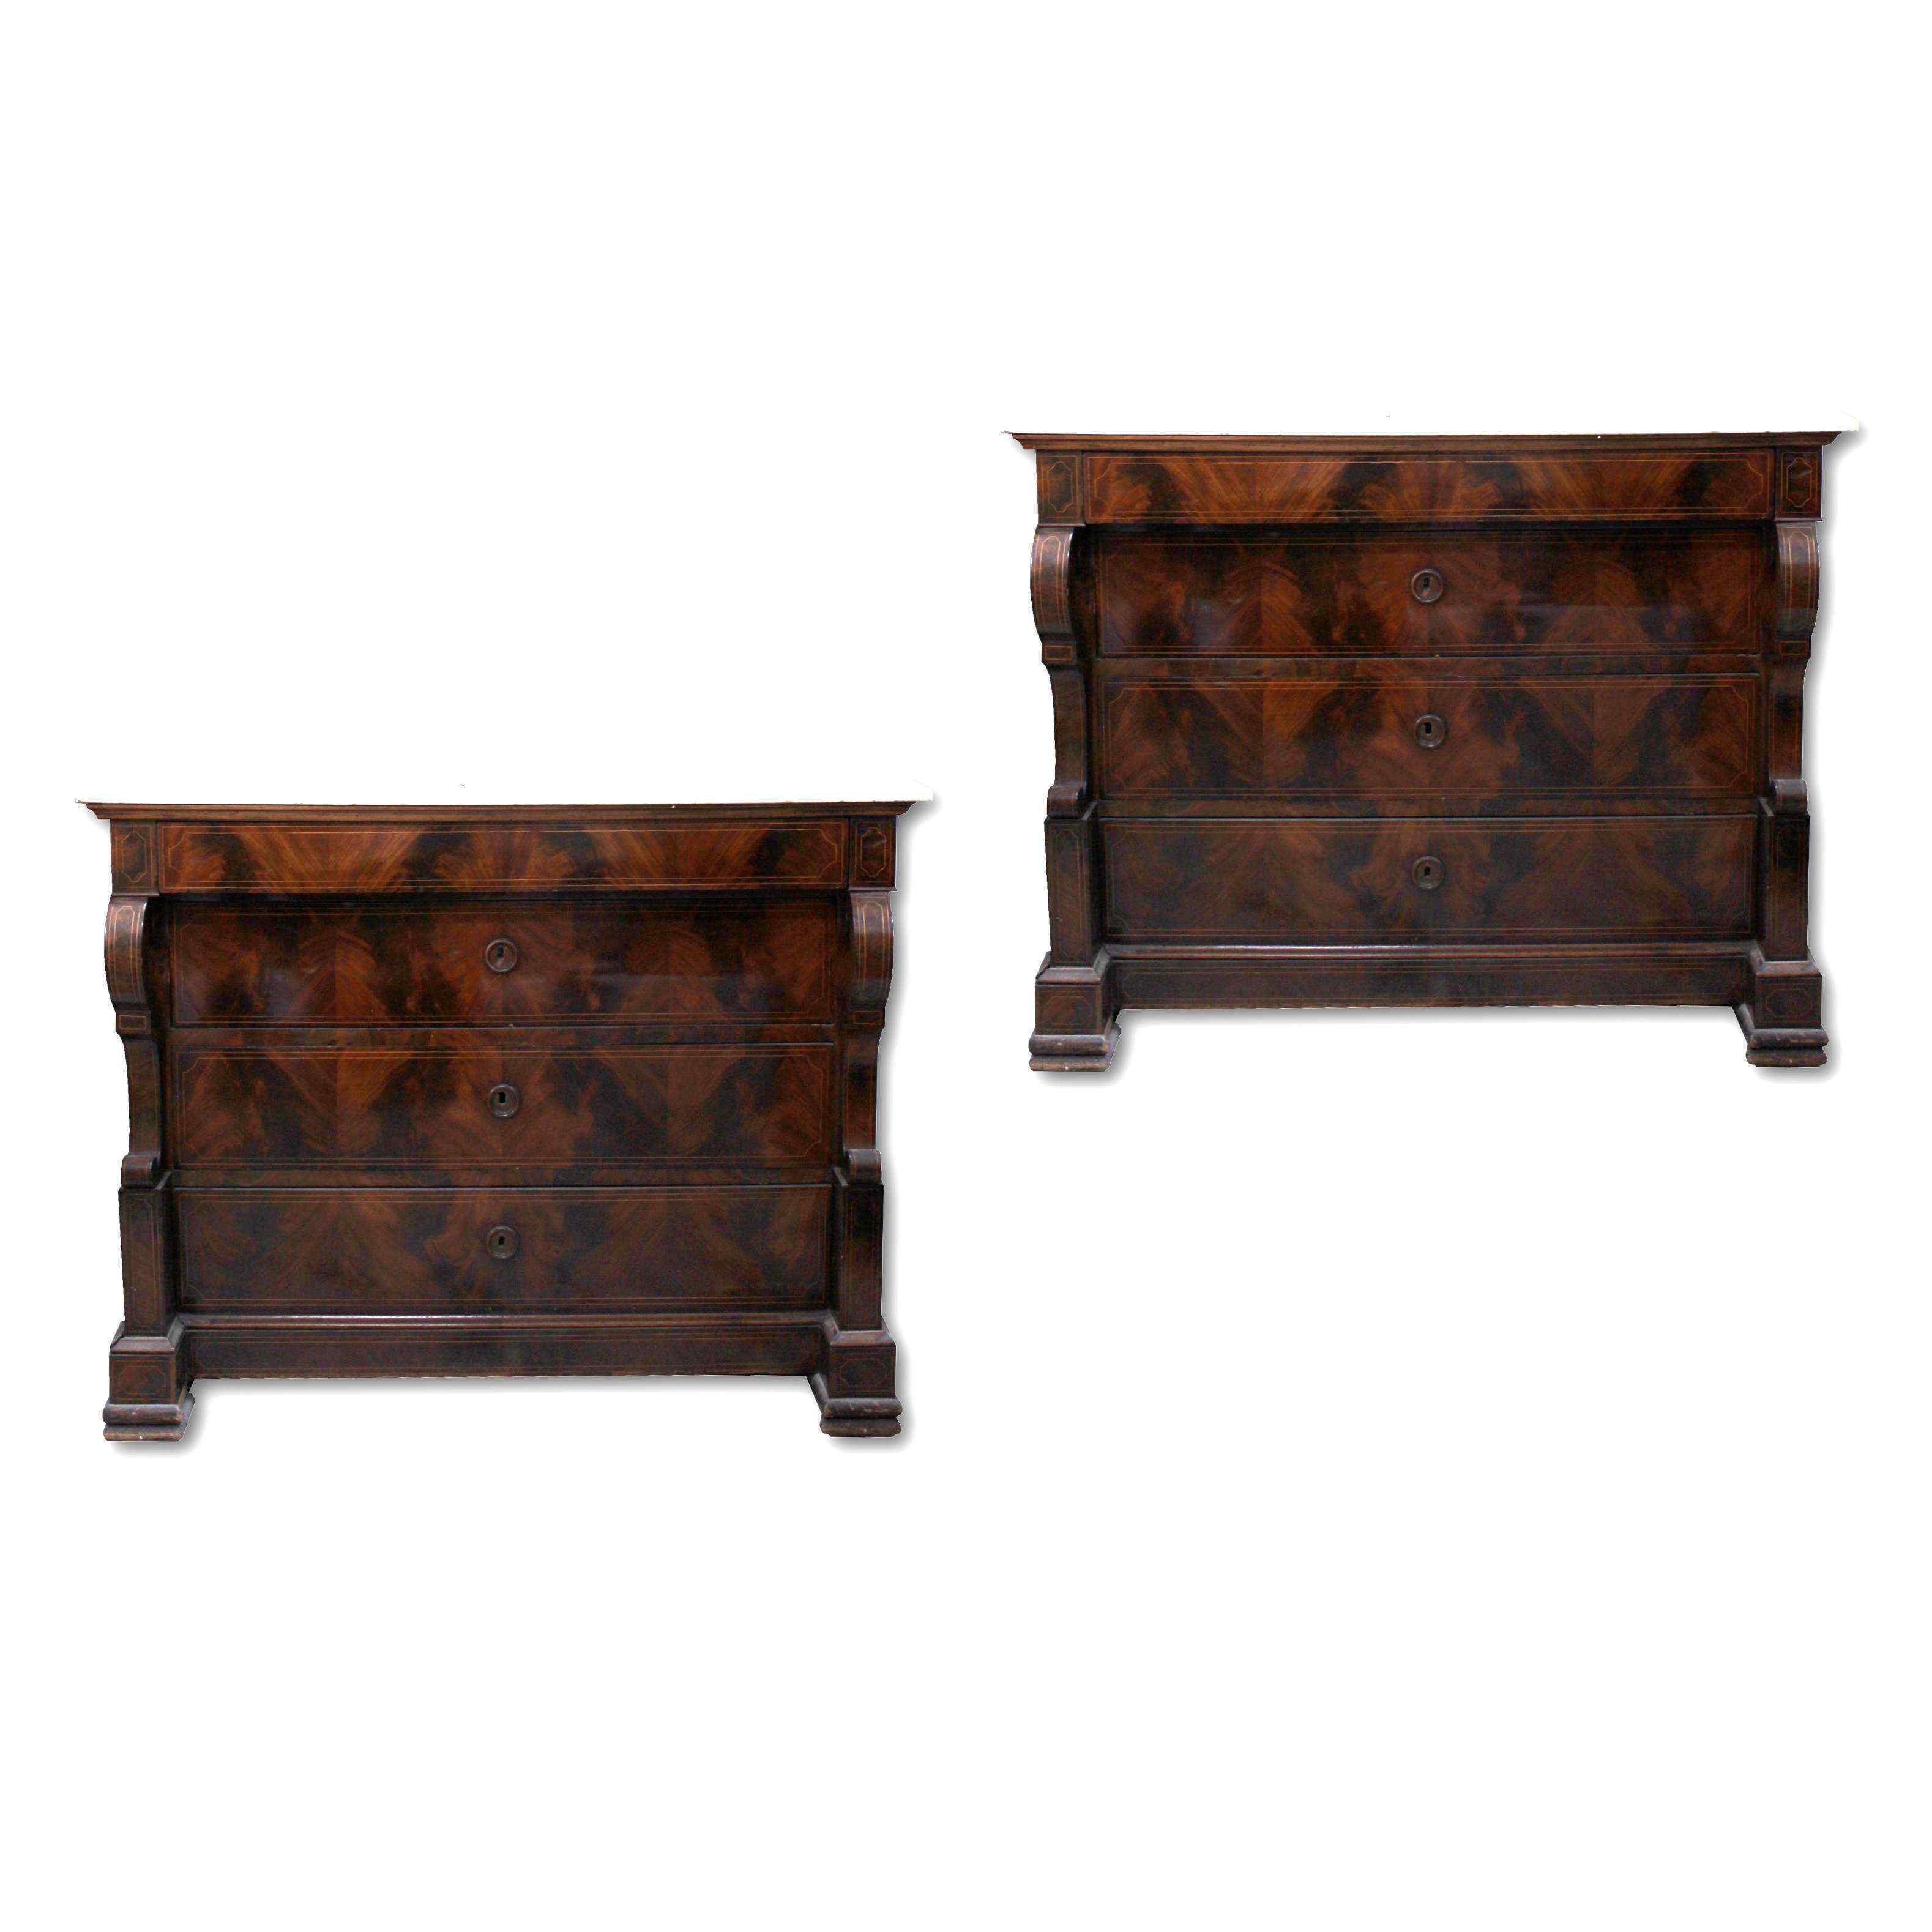 pair of antique chests of drawers